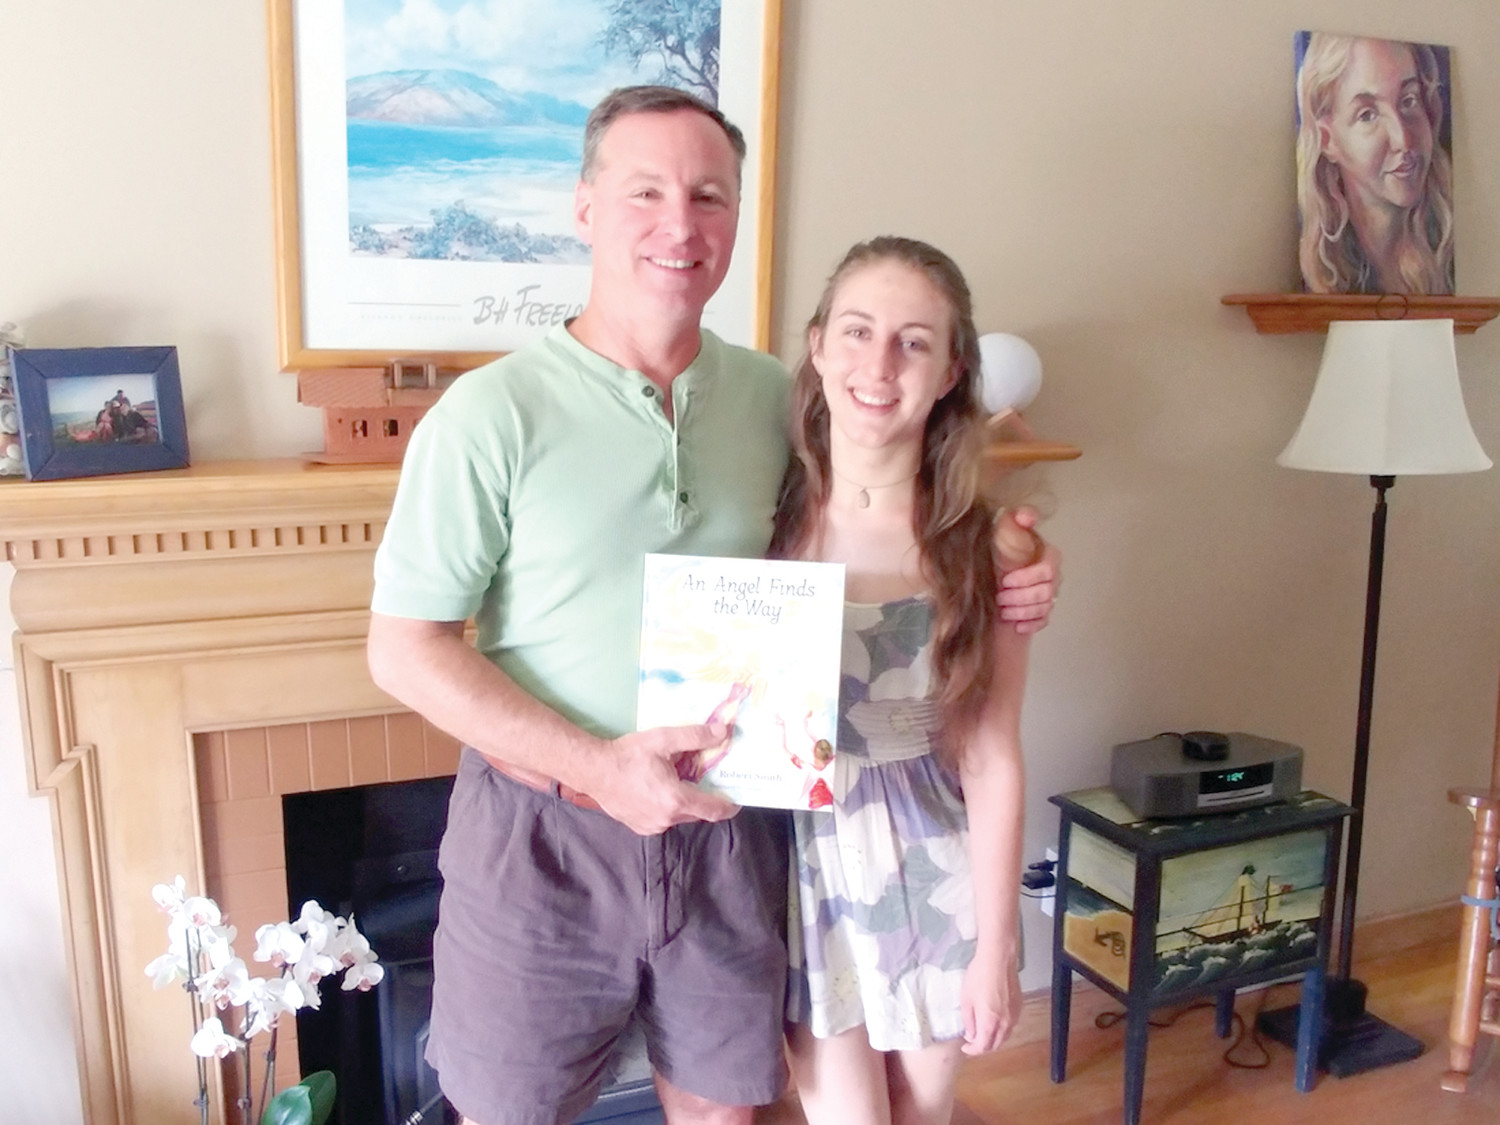 A FATHER, A DAUGHTER, A BOOK: Robert and Alexandra Smith pose together with the book written by him and illustrated by her, a labor of love spanning nearly six years.